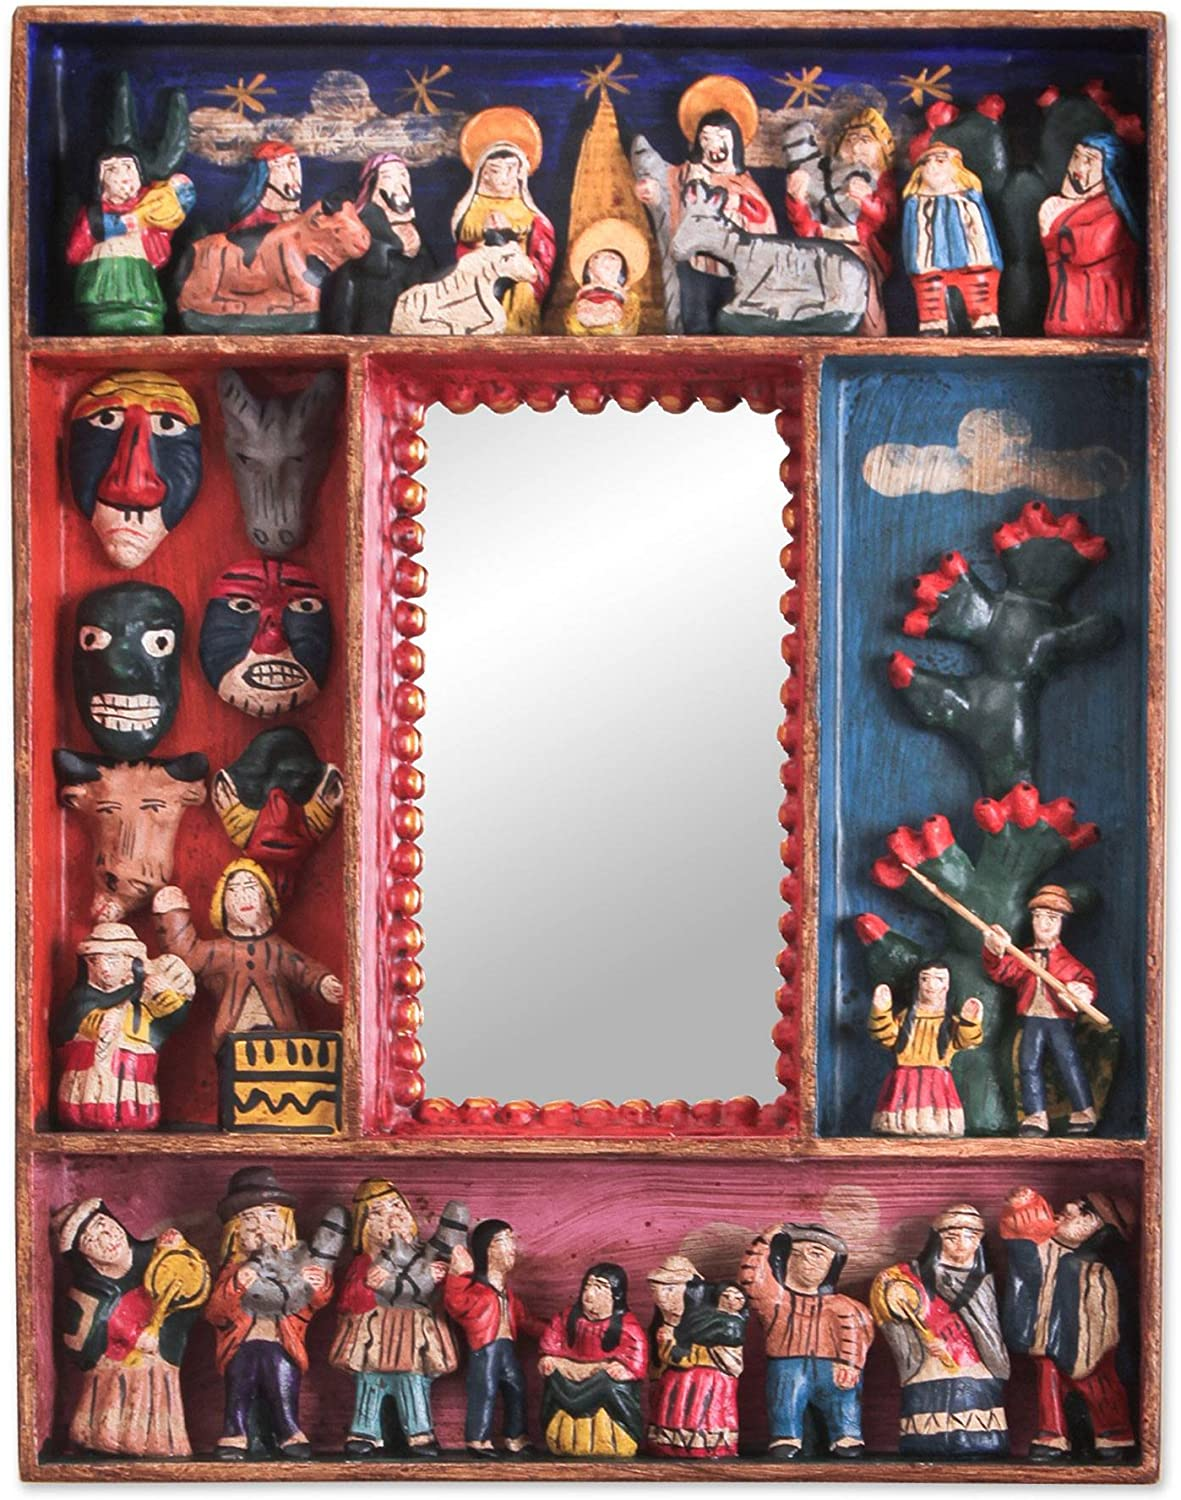 NOVICA Religious Wood and Ceramic Wall Little Carnaval' Mirror